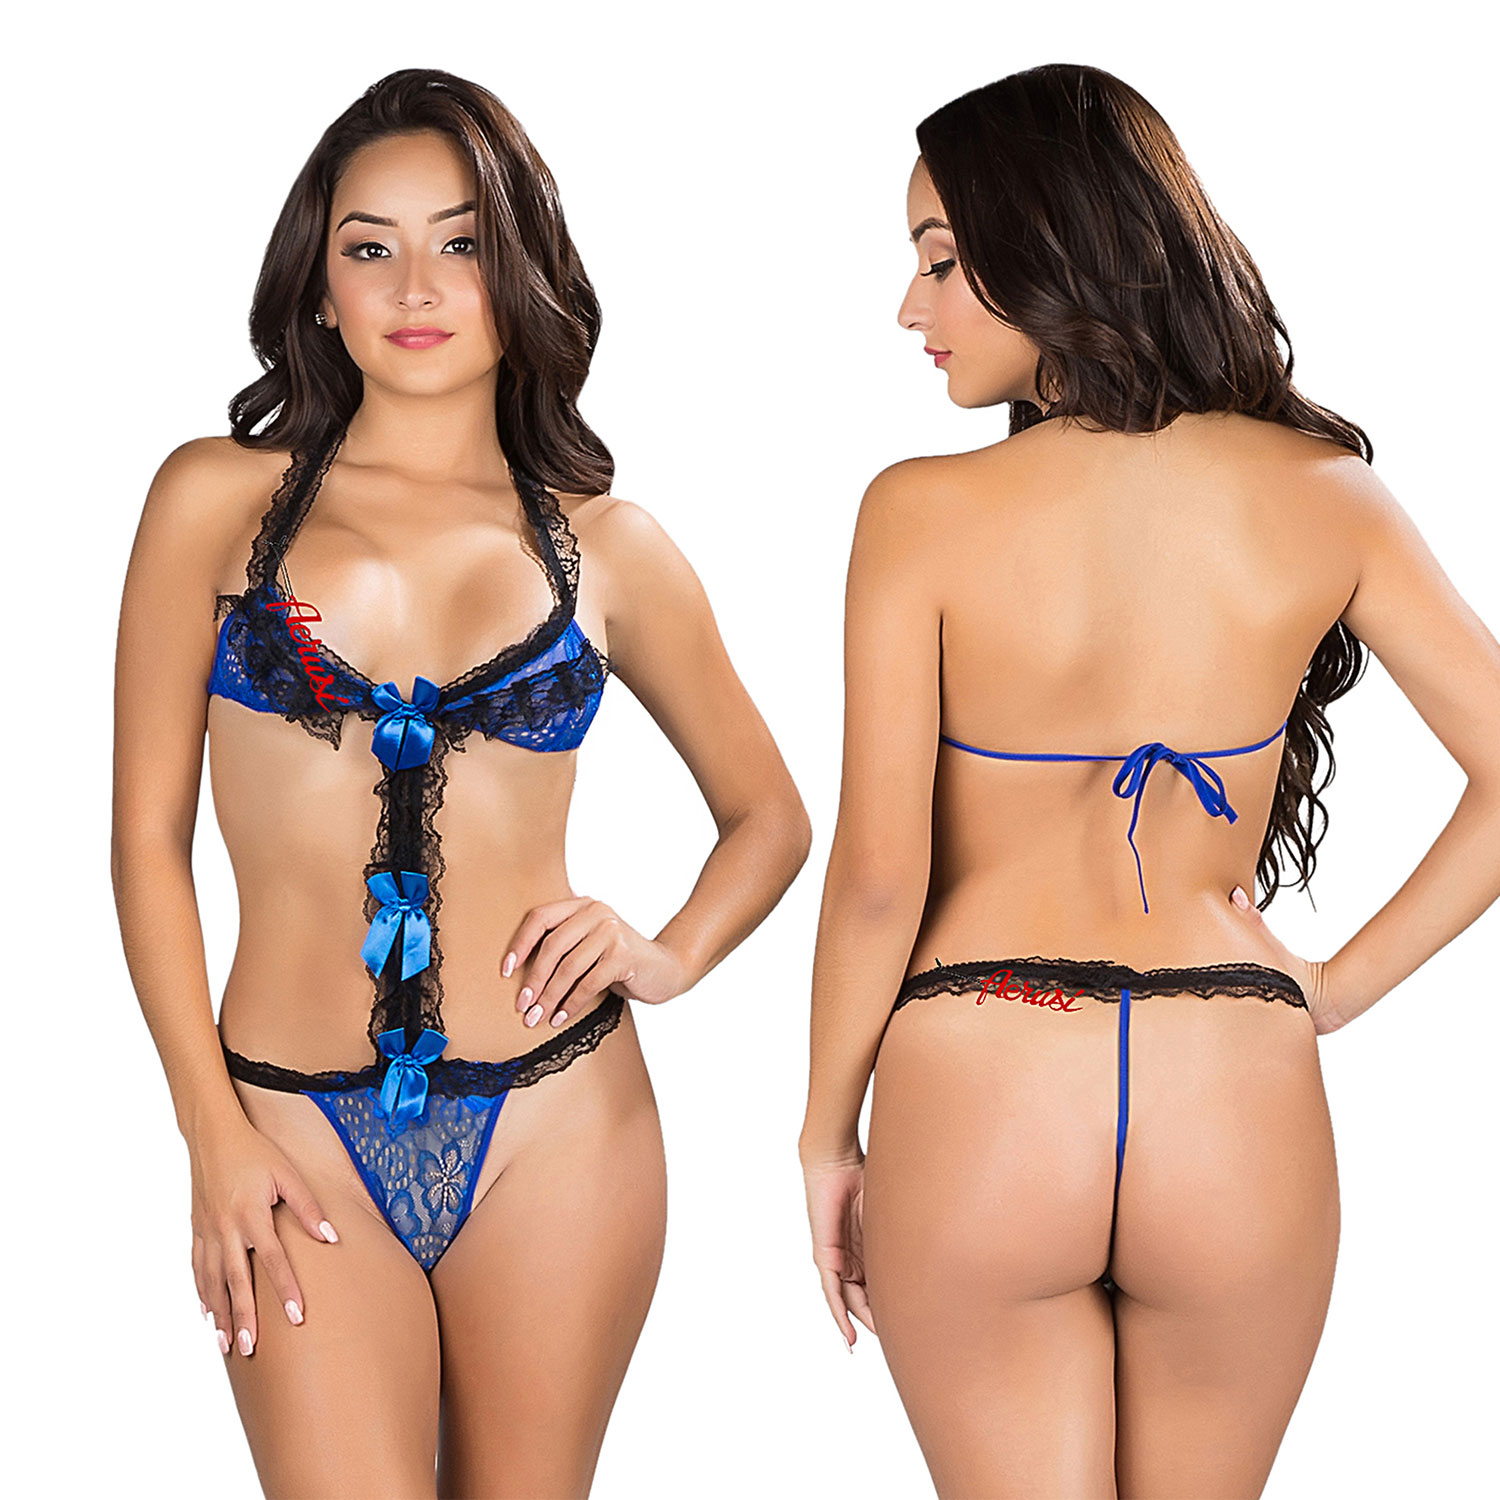 ba274802a42c Blue Women Sexy Lingerie Ruffle Lace Bodysuit Teddy with Bow ...